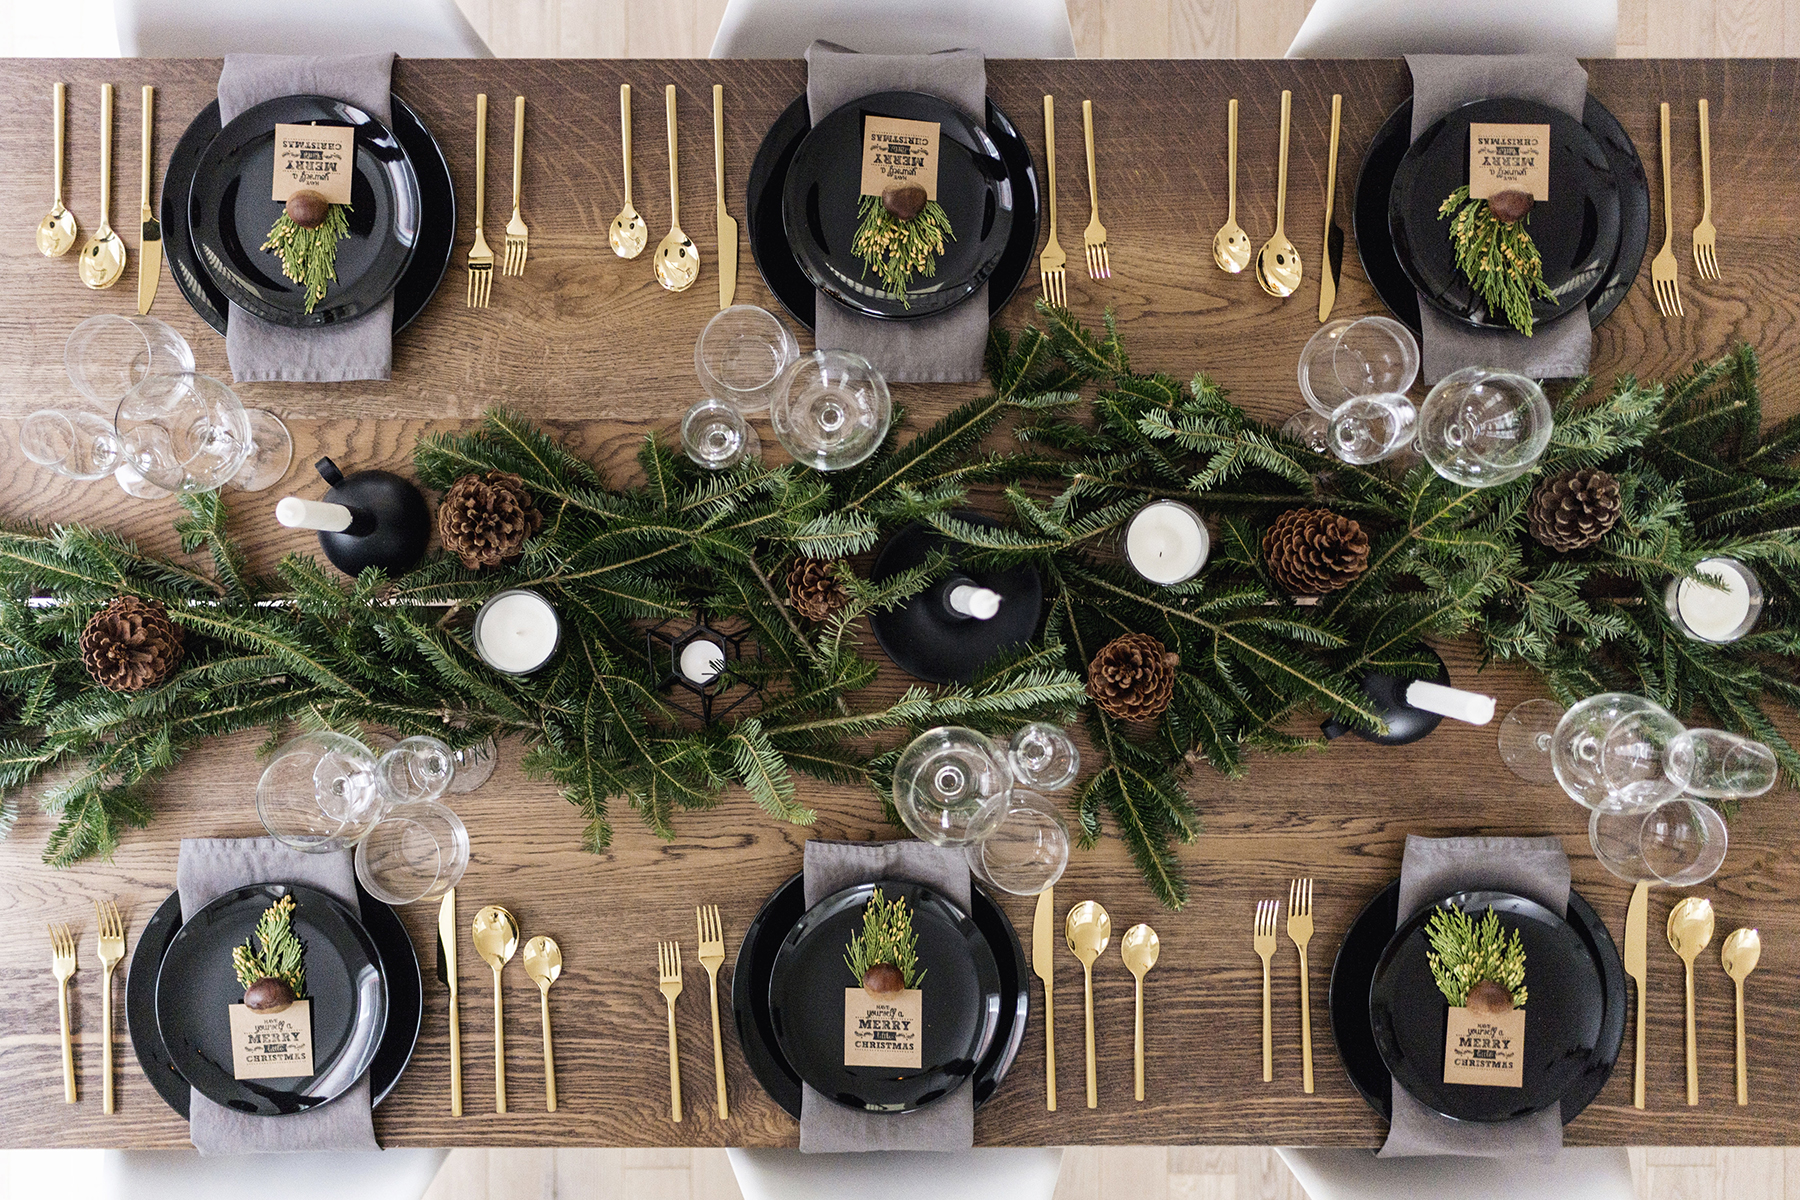 5. Festive Garland - Bring in the Christmas feel with greenery! Adding greens to your tablescape is perfect for accenting your gorgeous centerpiece!